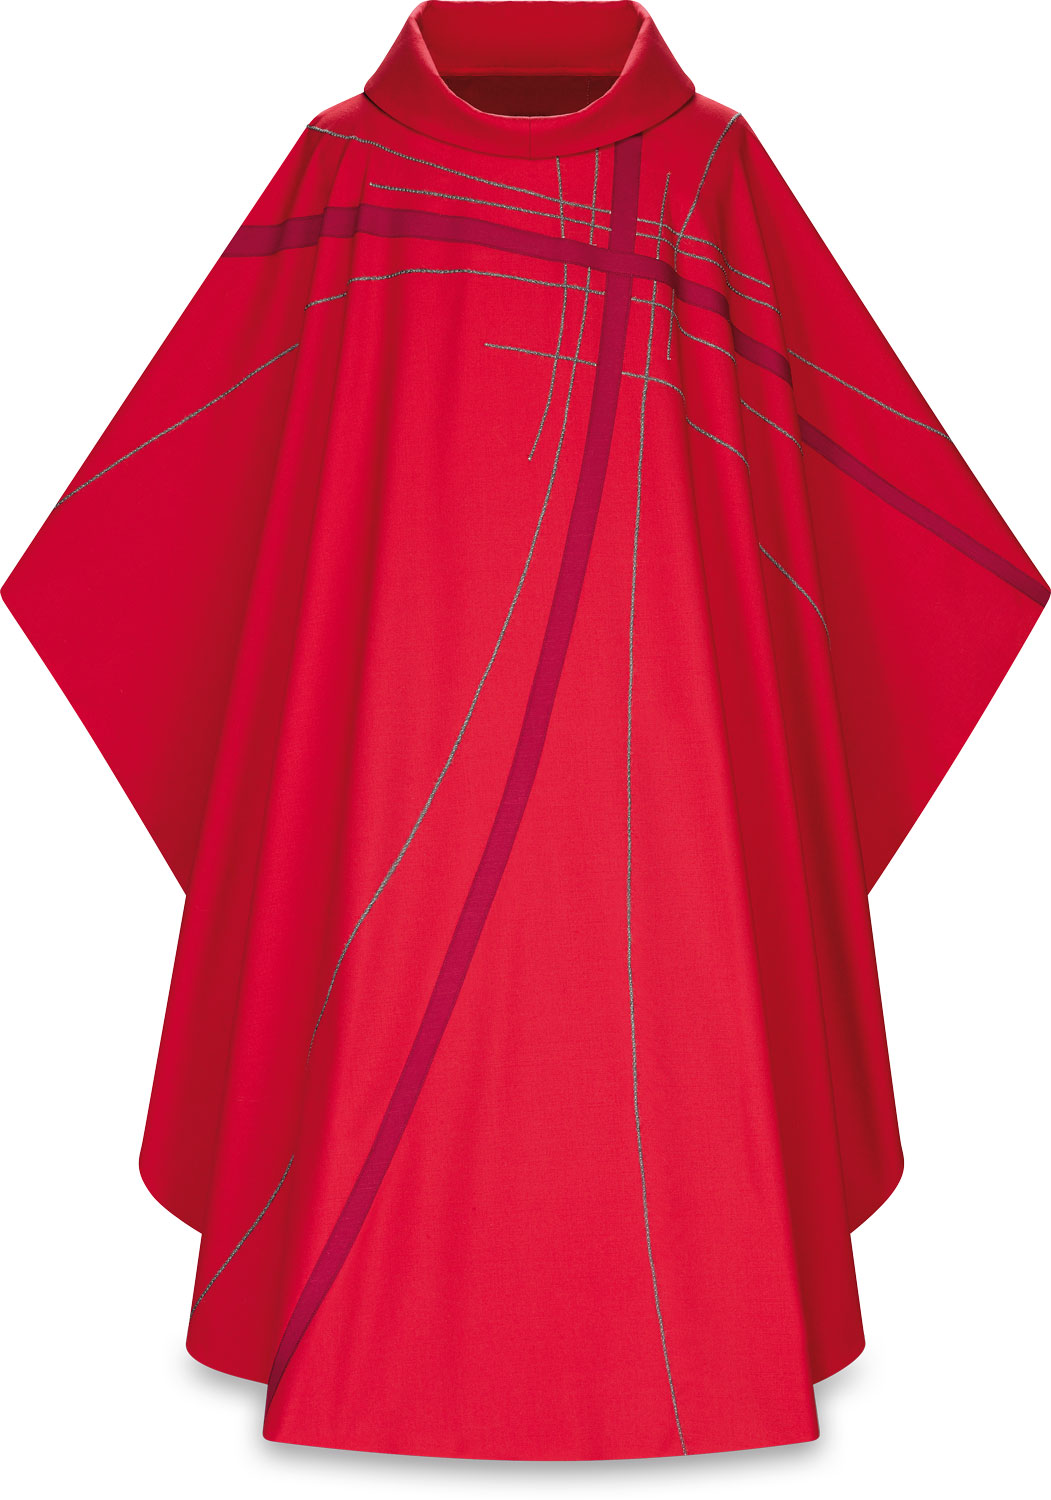 Chasuble | Red | 5226 | Slabbinck